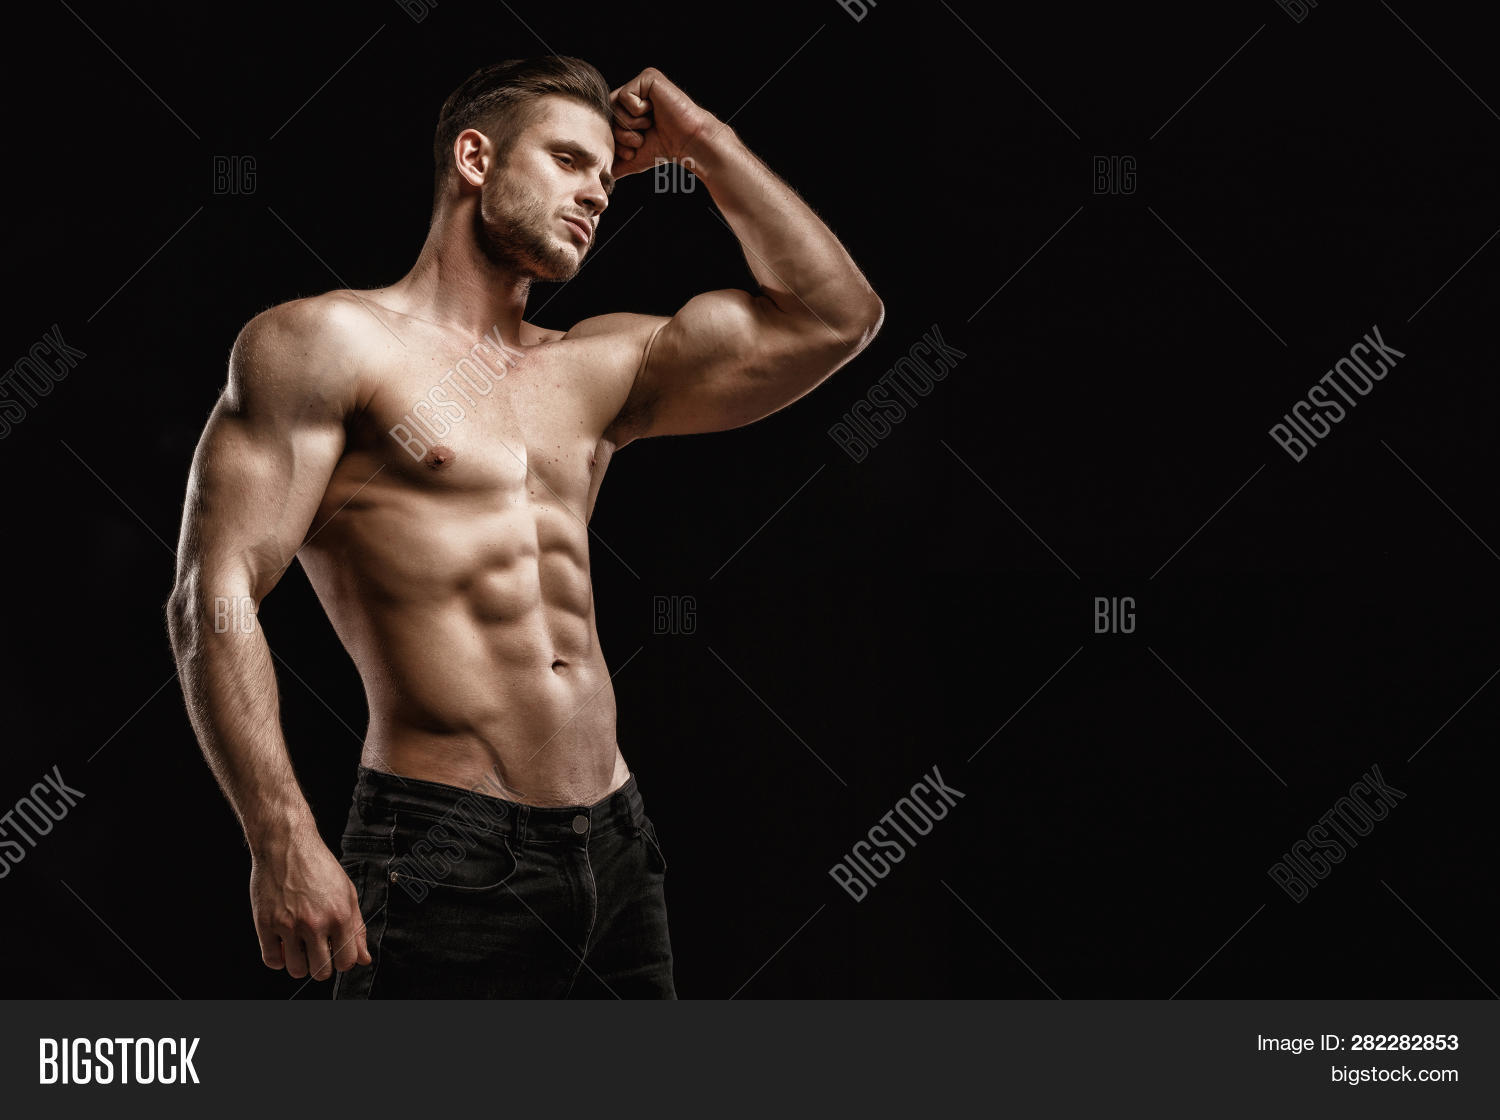 abdominal,abs,active,adult,arm,athlete,athletic,back,background,biceps,big,black,body,bodybuilder,bodybuilding,caucasian,concept,dark,diet,exercise,fit,fitness,flexing,guy,gym,handsome,health,heavy,lifestyle,mad,male,man,model,motivation,muscle,muscular,person,power,sexy,shoulders,sport,sportive,sportsman,strong,studio,torso,training,triceps,workout,young